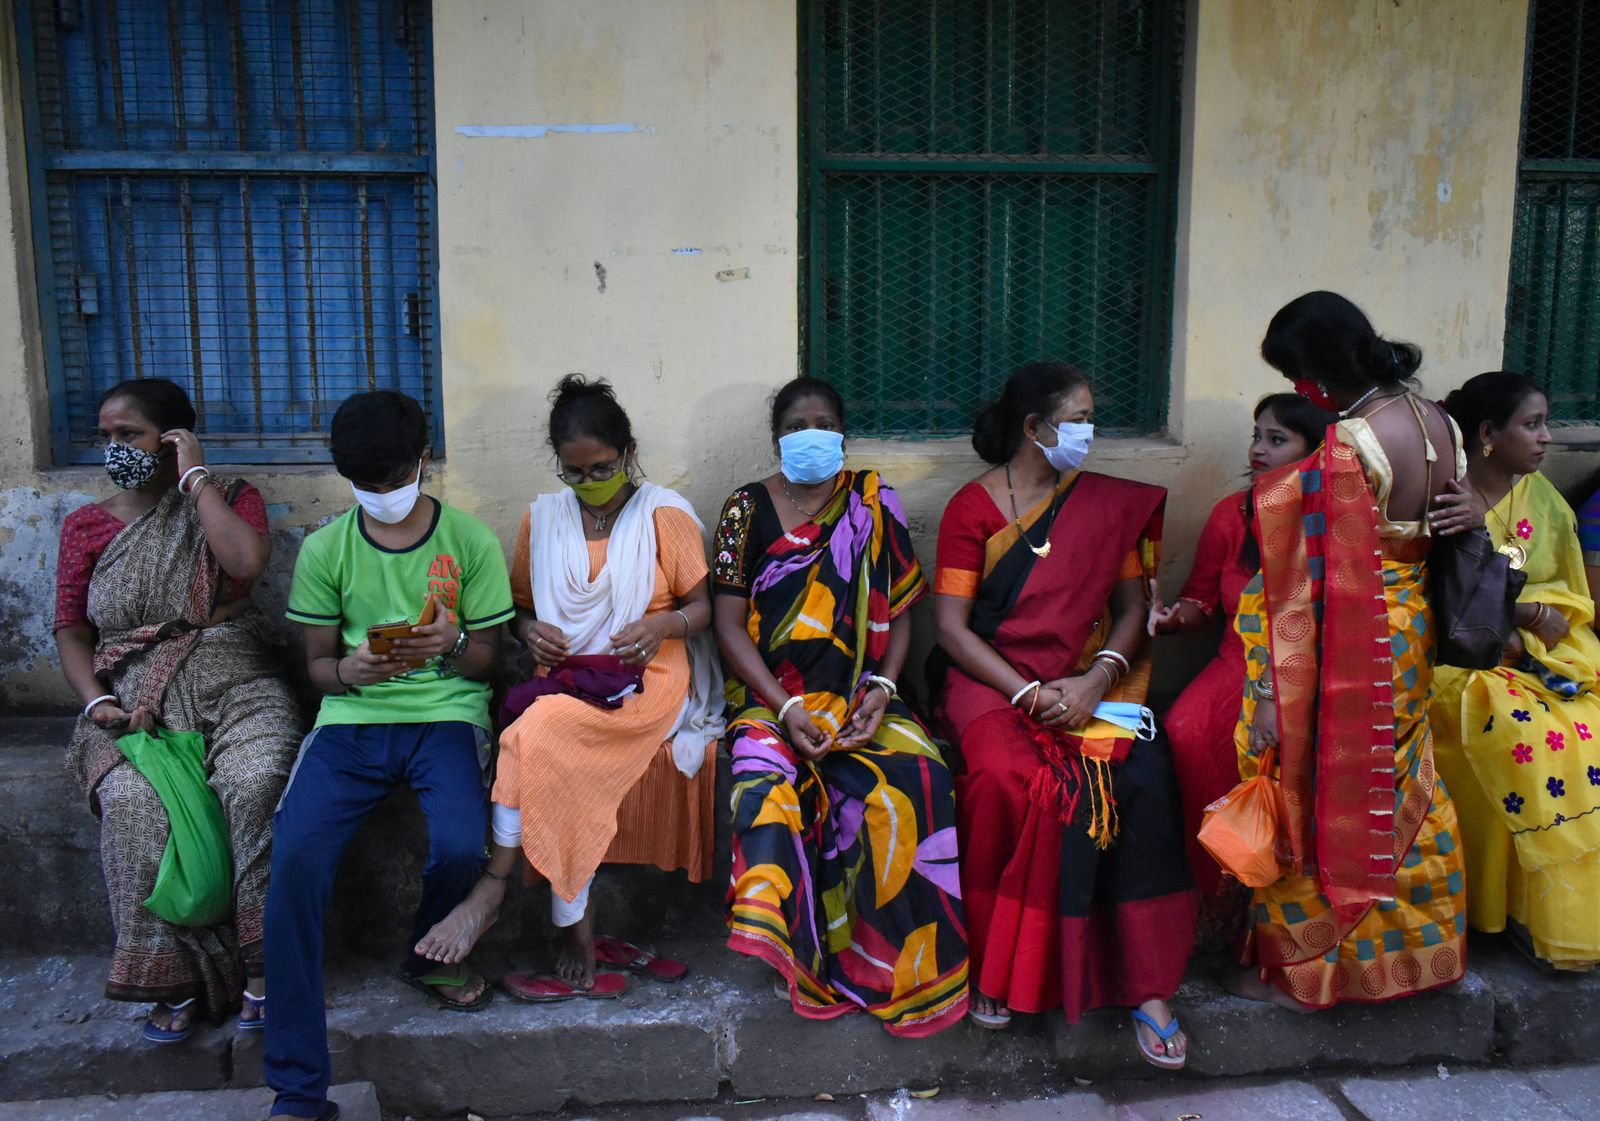 Crowd and Covid-19 in India People are sitting beside the road without maintaining social distancing and some are not we